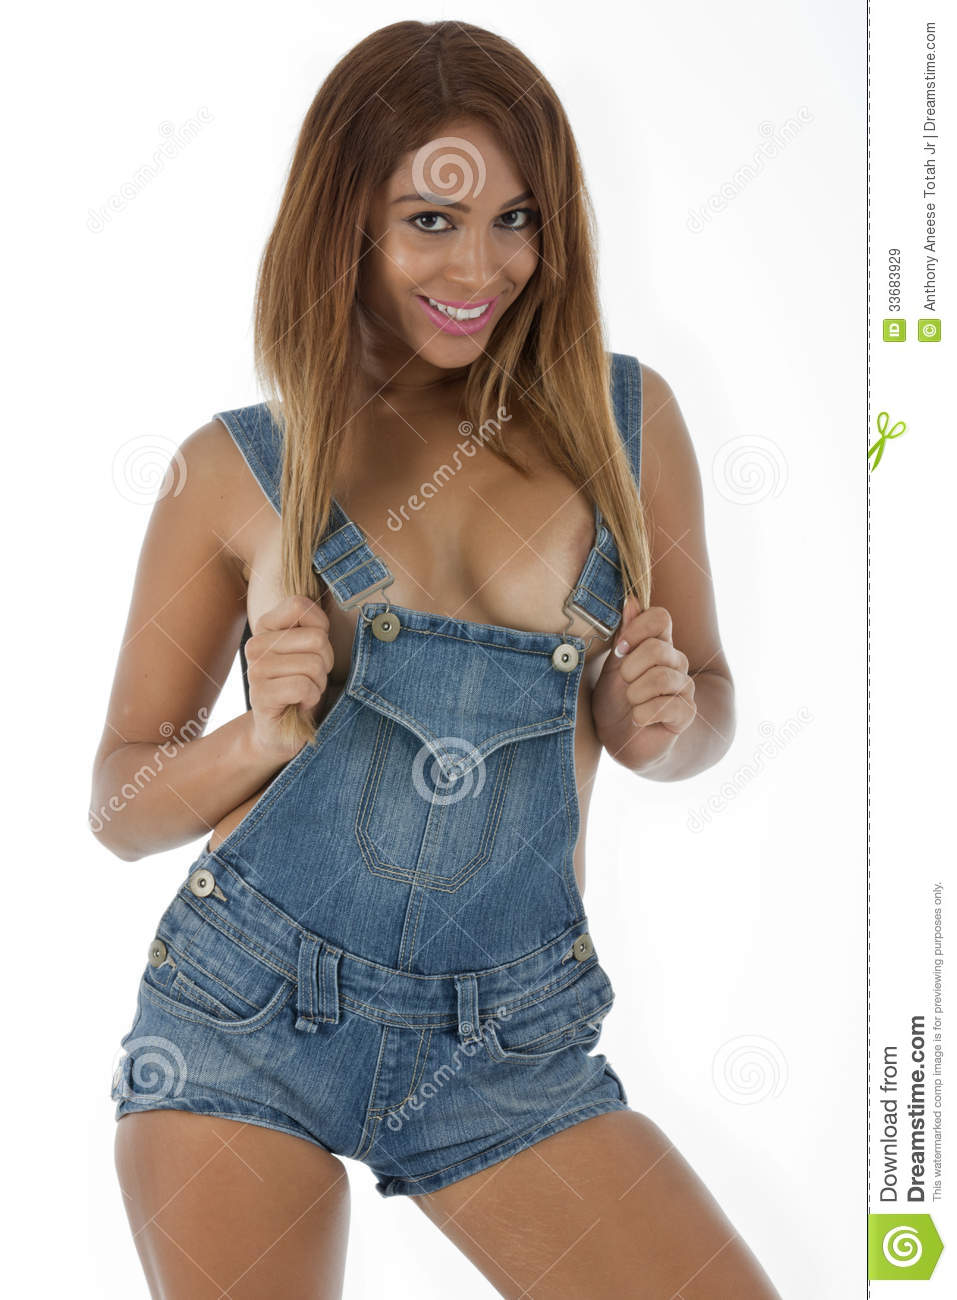 woman in only denim overalls stock image - image of legs, hips: 33683929